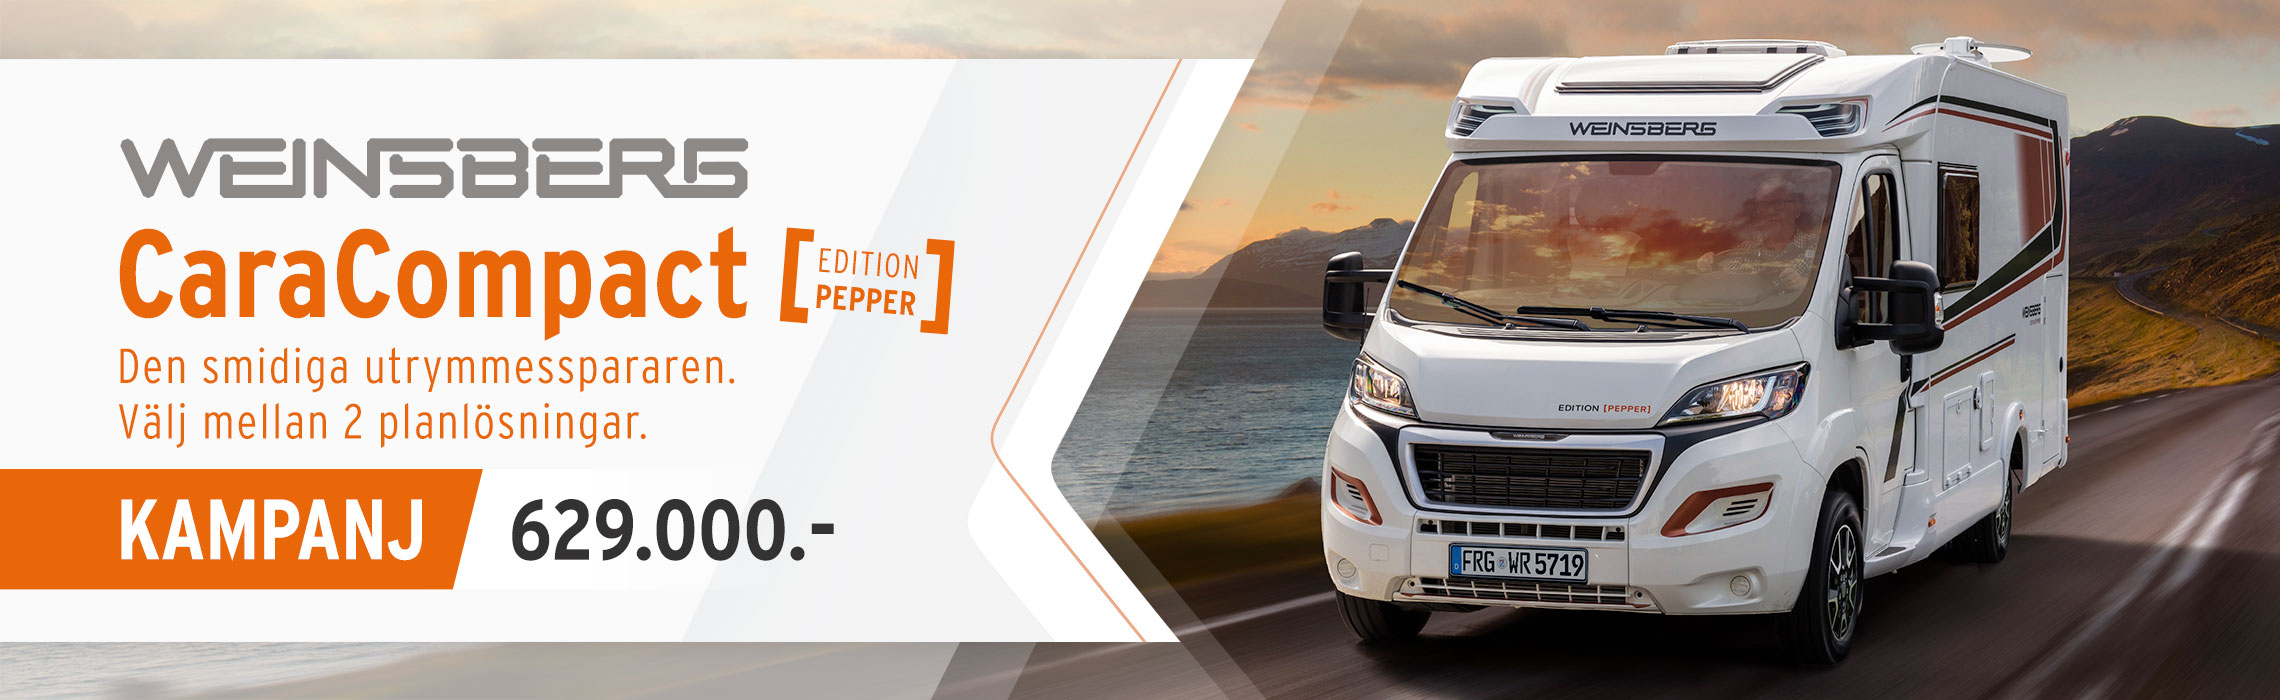 Weinsberg CaraCompact Edition Pepper